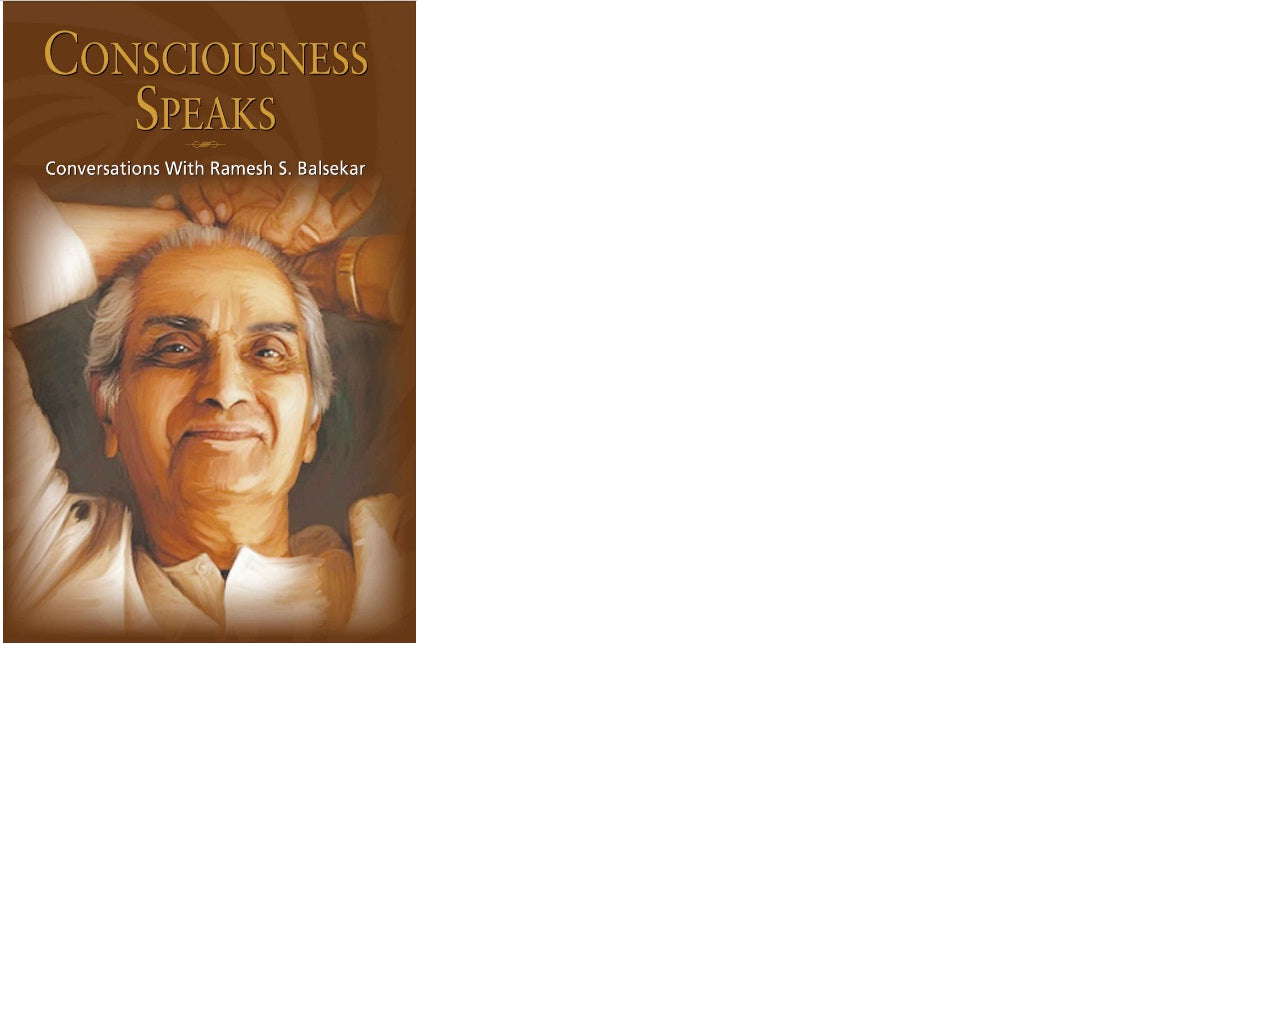 Consciousness Speaks: Conversations With Ramesh S. Balsekar